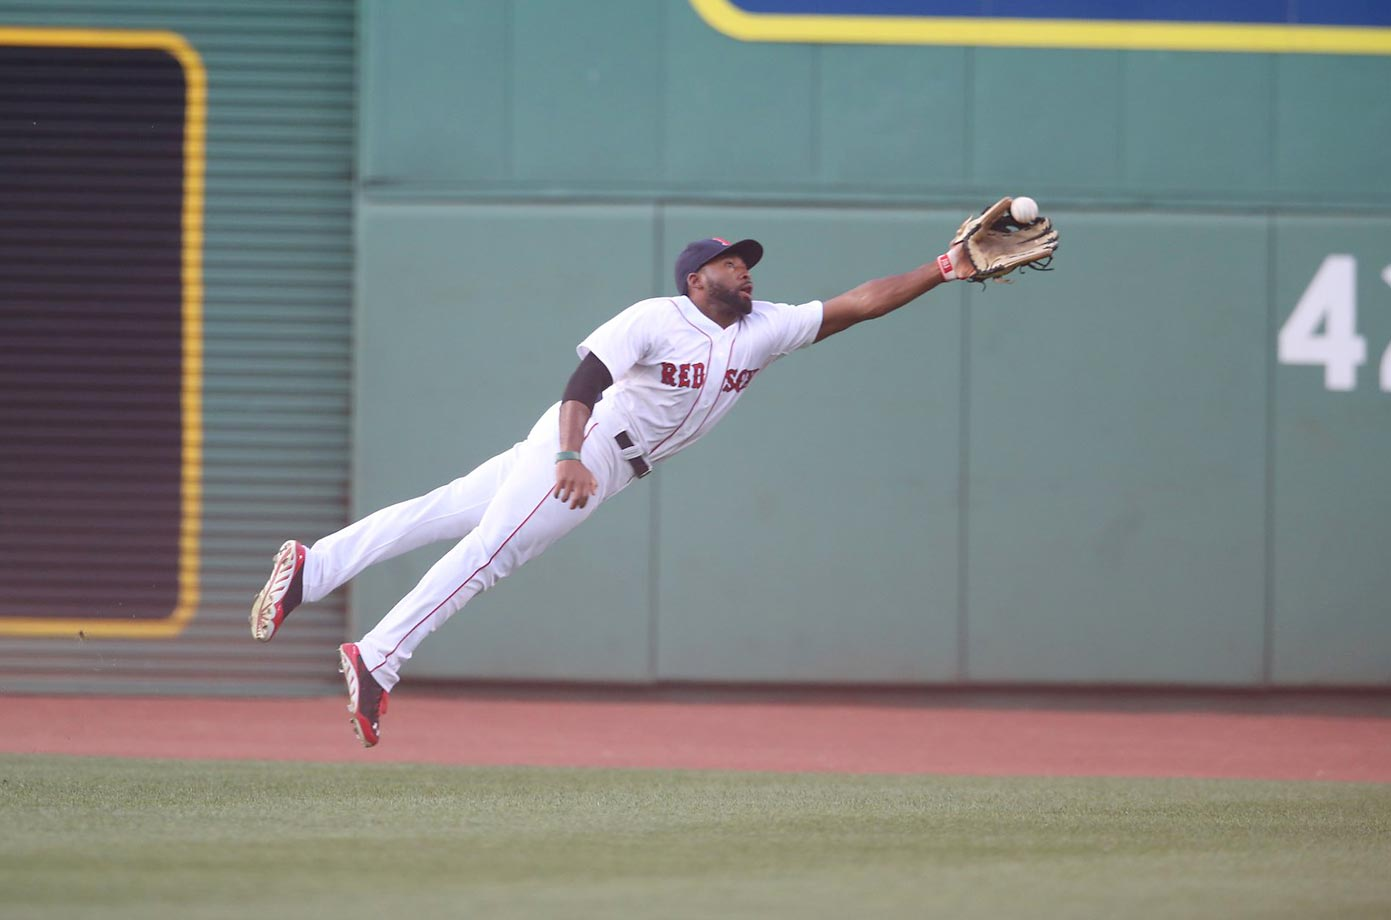 Boston Red Sox outfielder Jackie Bradley Jr. stretches to make a phenomenal diving catch against the Chicago White Sox on July 9, 2014 at Fenway Park in Boston.